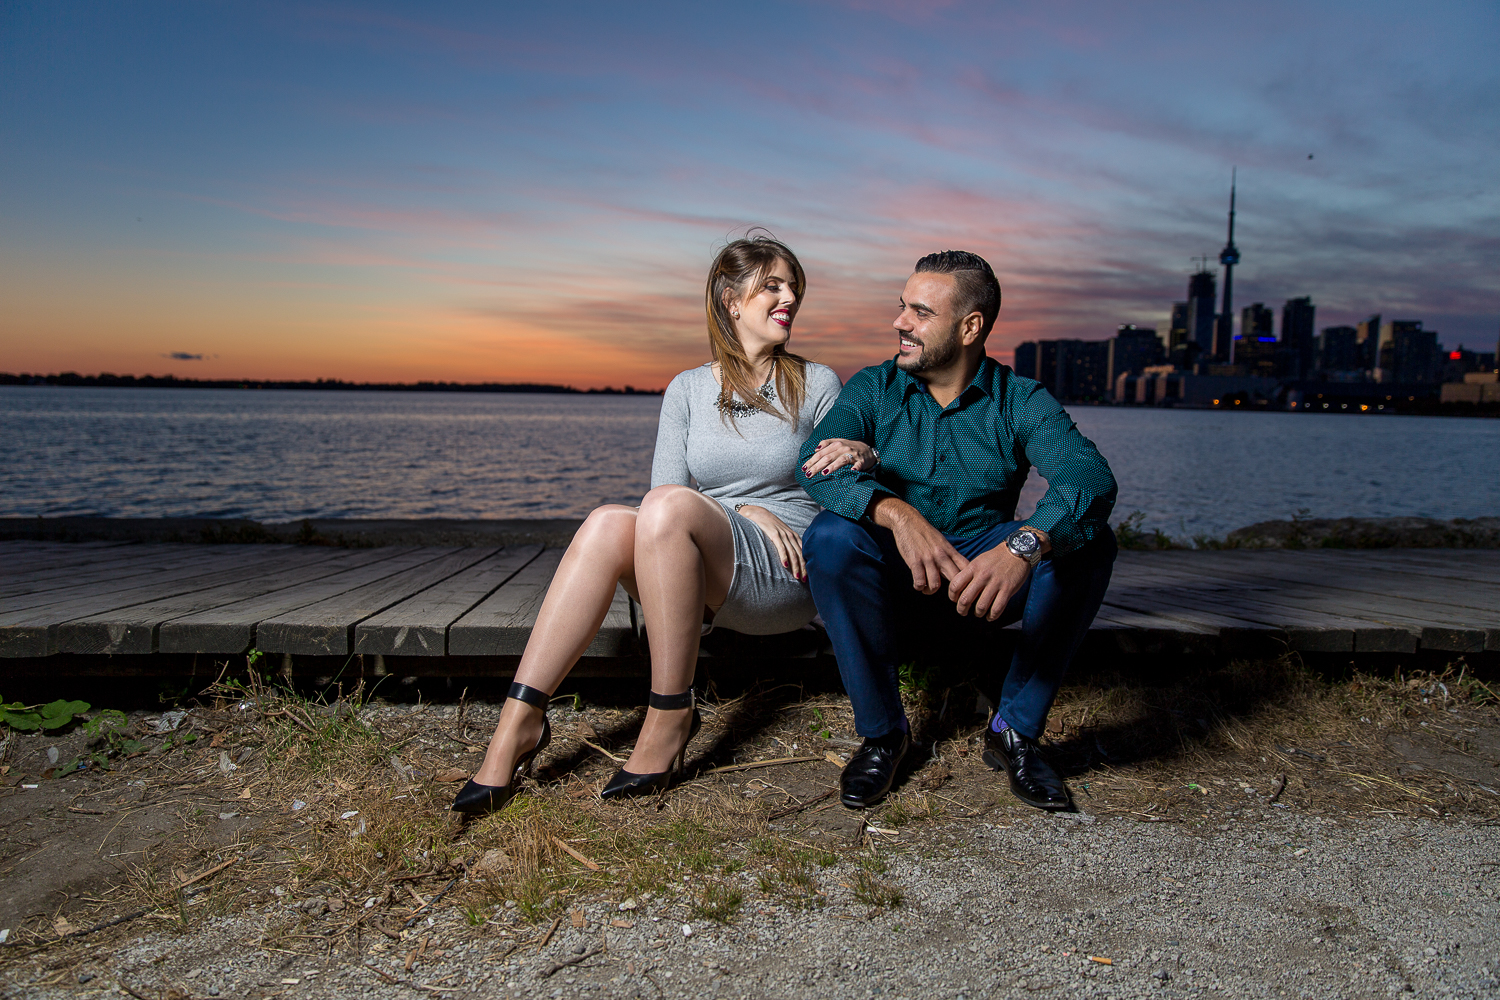 Distillery-District-Polson-Pier-Humber-Bay-Park-Engagement-Photos-0025.jpg